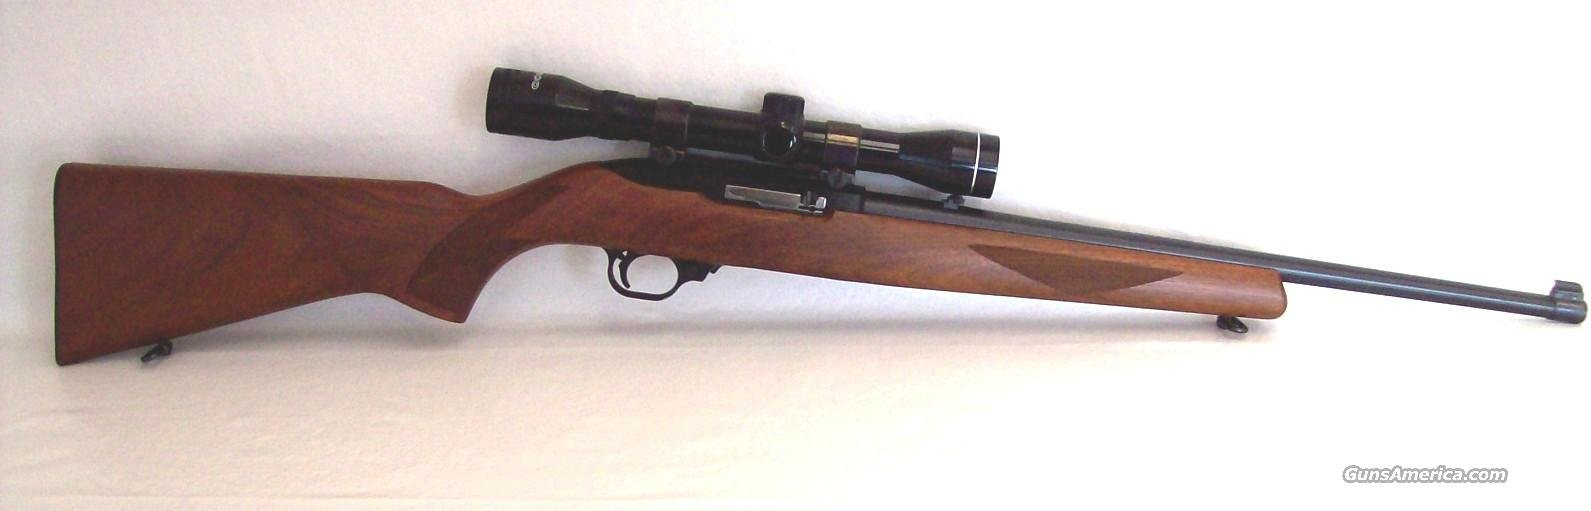 Ruger 10-22 w/ Tasco 4X32 Scope - LIKE NEW  Guns > Rifles > Ruger Rifles > 10-22